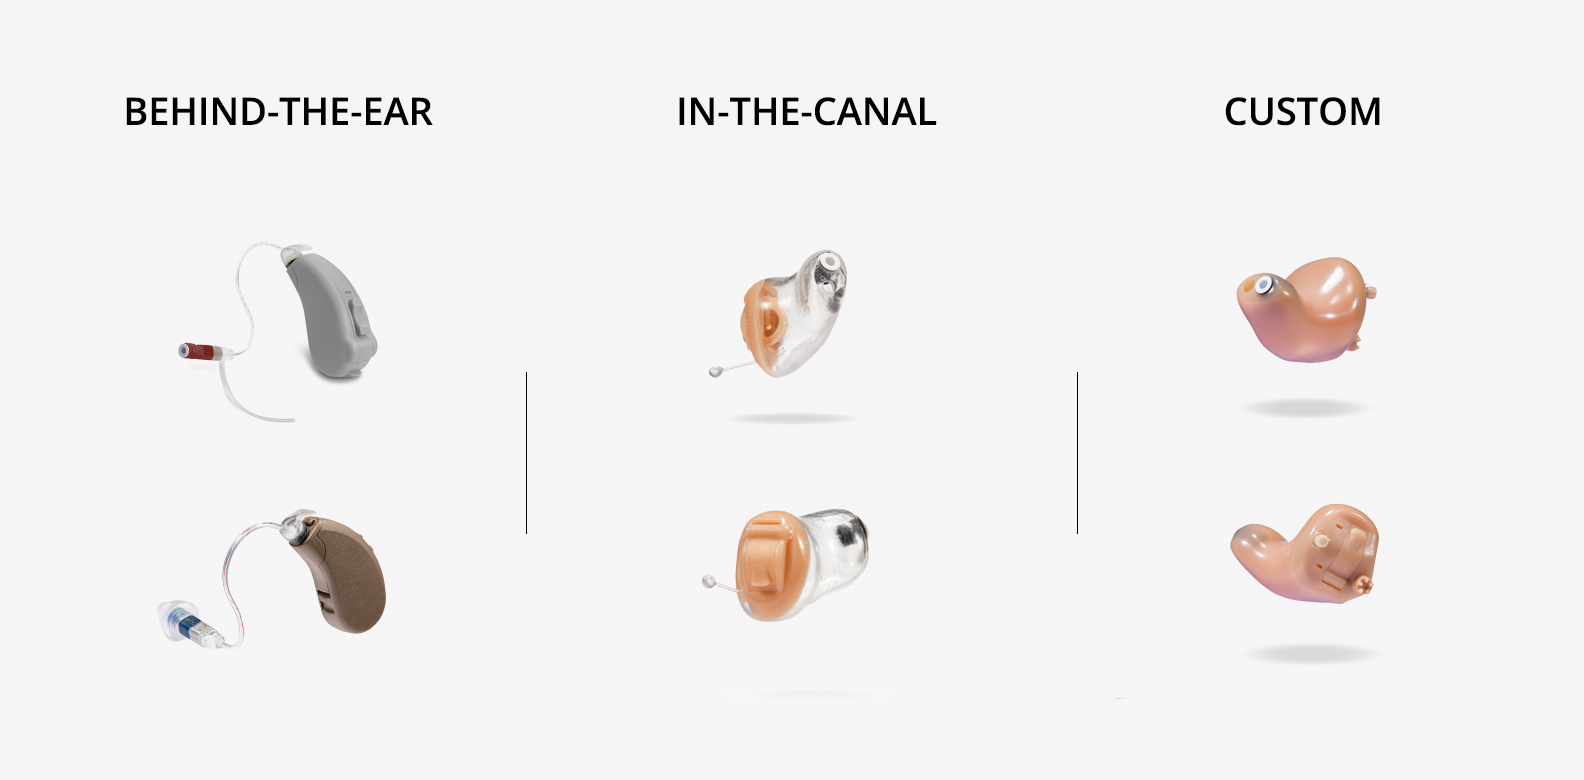 Image of various hearing aid options